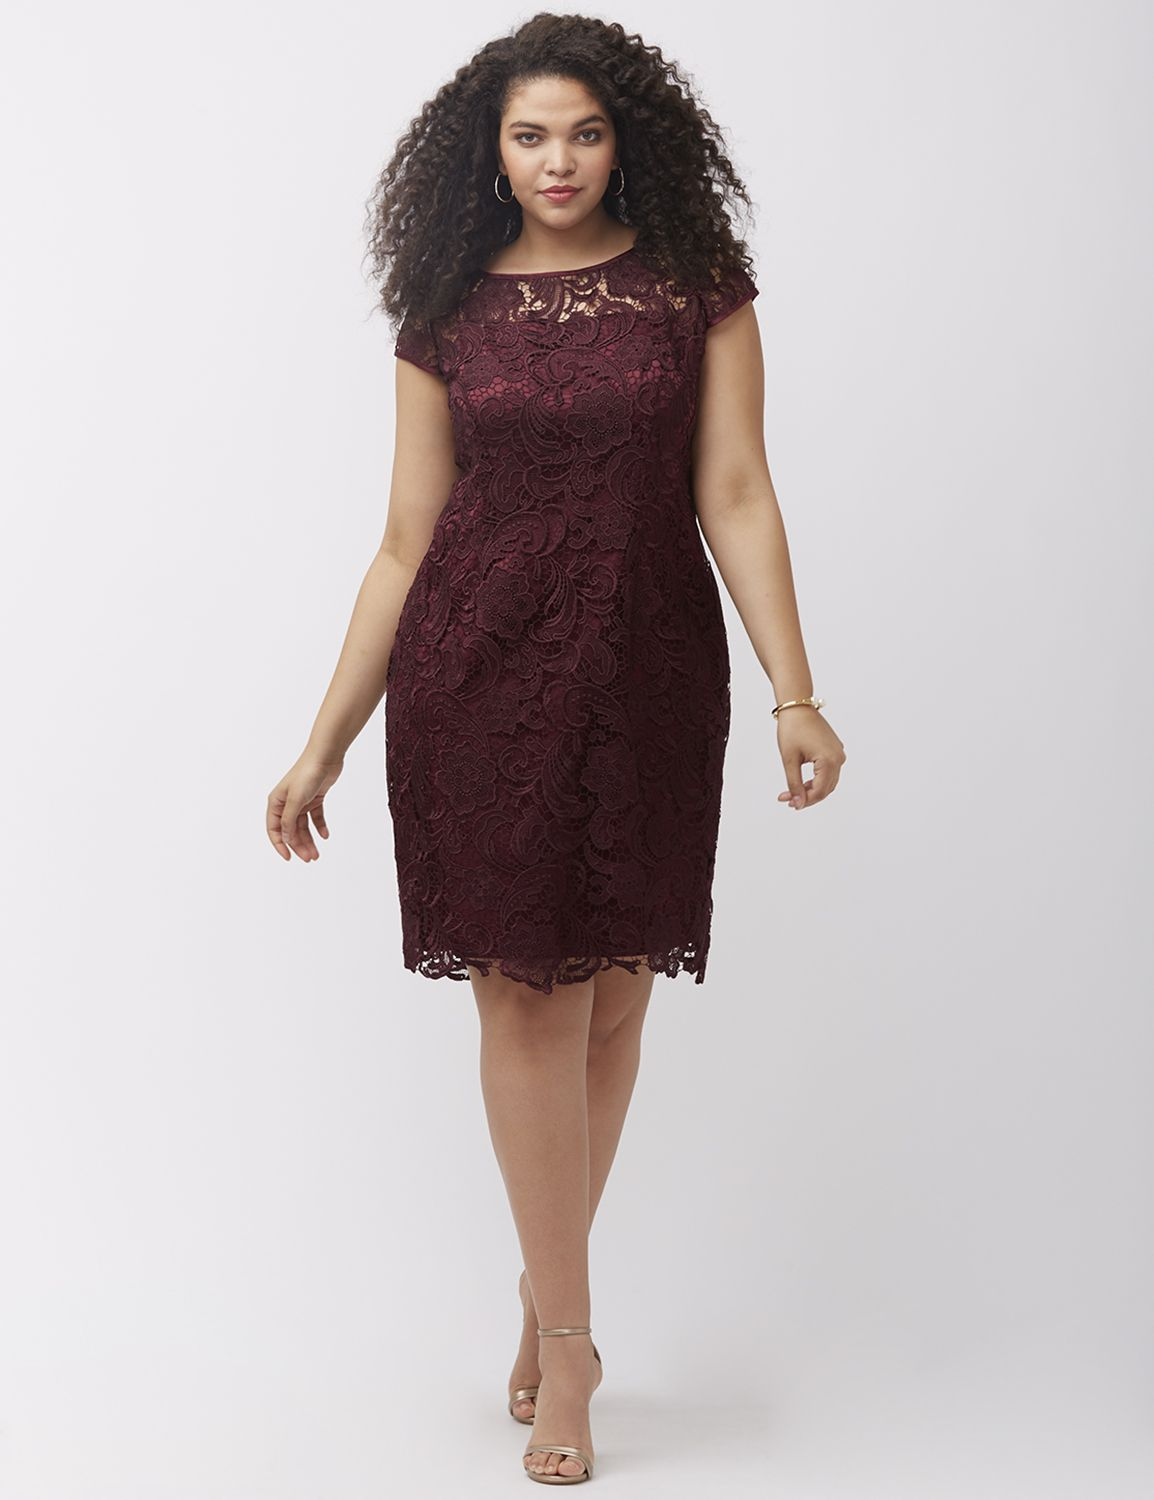 Adrianna Papell Evening Lace Dresses